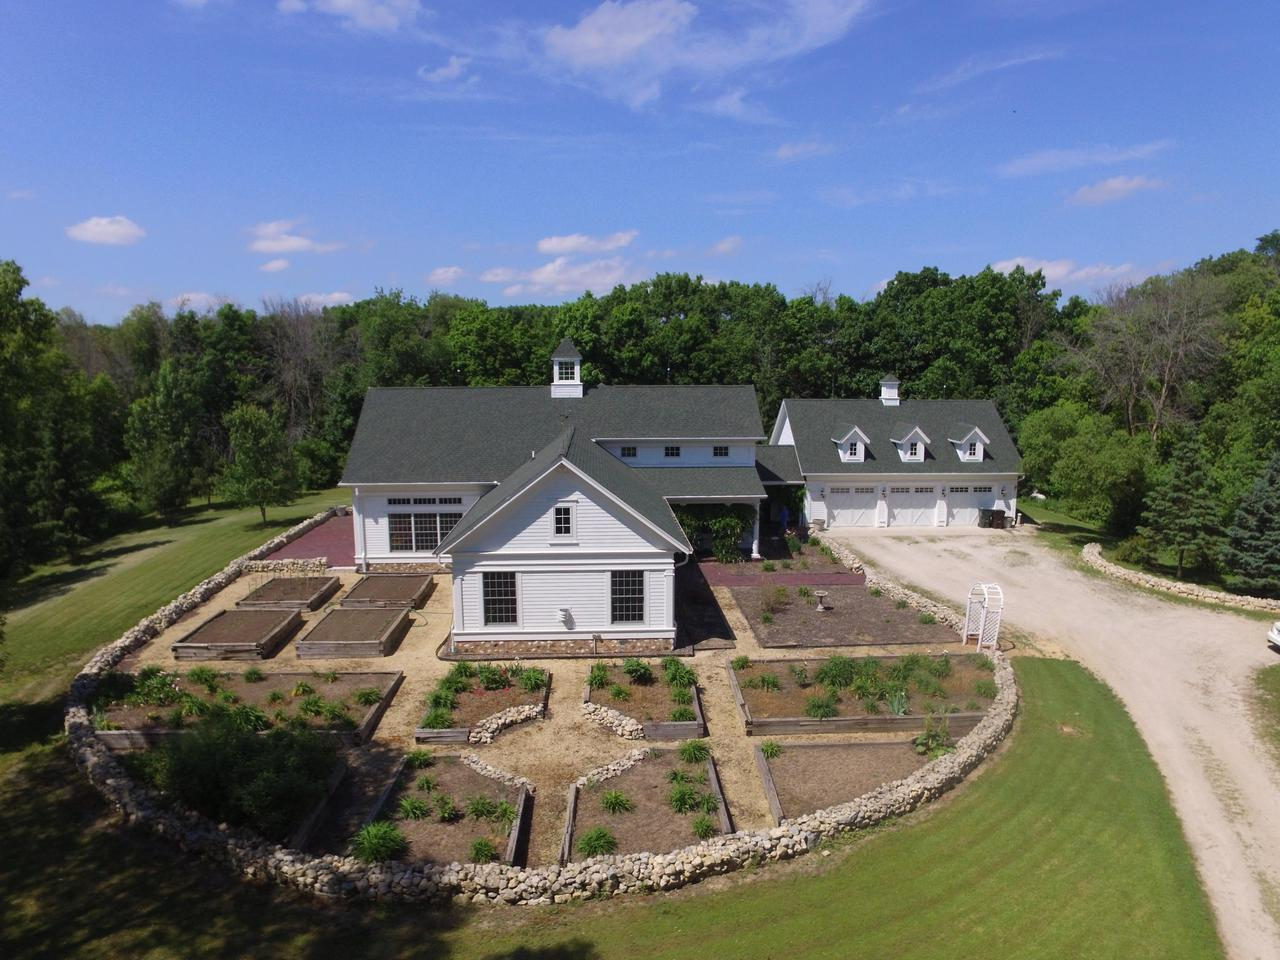 Quiet parklike seclusion on 50 acres surrounded by open farmland, ponds &wildlife. Features a 2012 Thelen Greek Revival style 5000 sq.ft customdesigned home totally accessible inside and out with a 3 level elevatorand raised garden beds. Master wing includes an office & fireplace.The property also includes a custom designed working horse facility w/ indoor arena and built in apartment for employees or family. Easy maintenance poured concrete stalls, radiant heating, 8 grass paddocks, loafing sheds, hayfield and outbuildings w/large RV storage. Easy commute from Milwaukee, Kenosha & Racine.